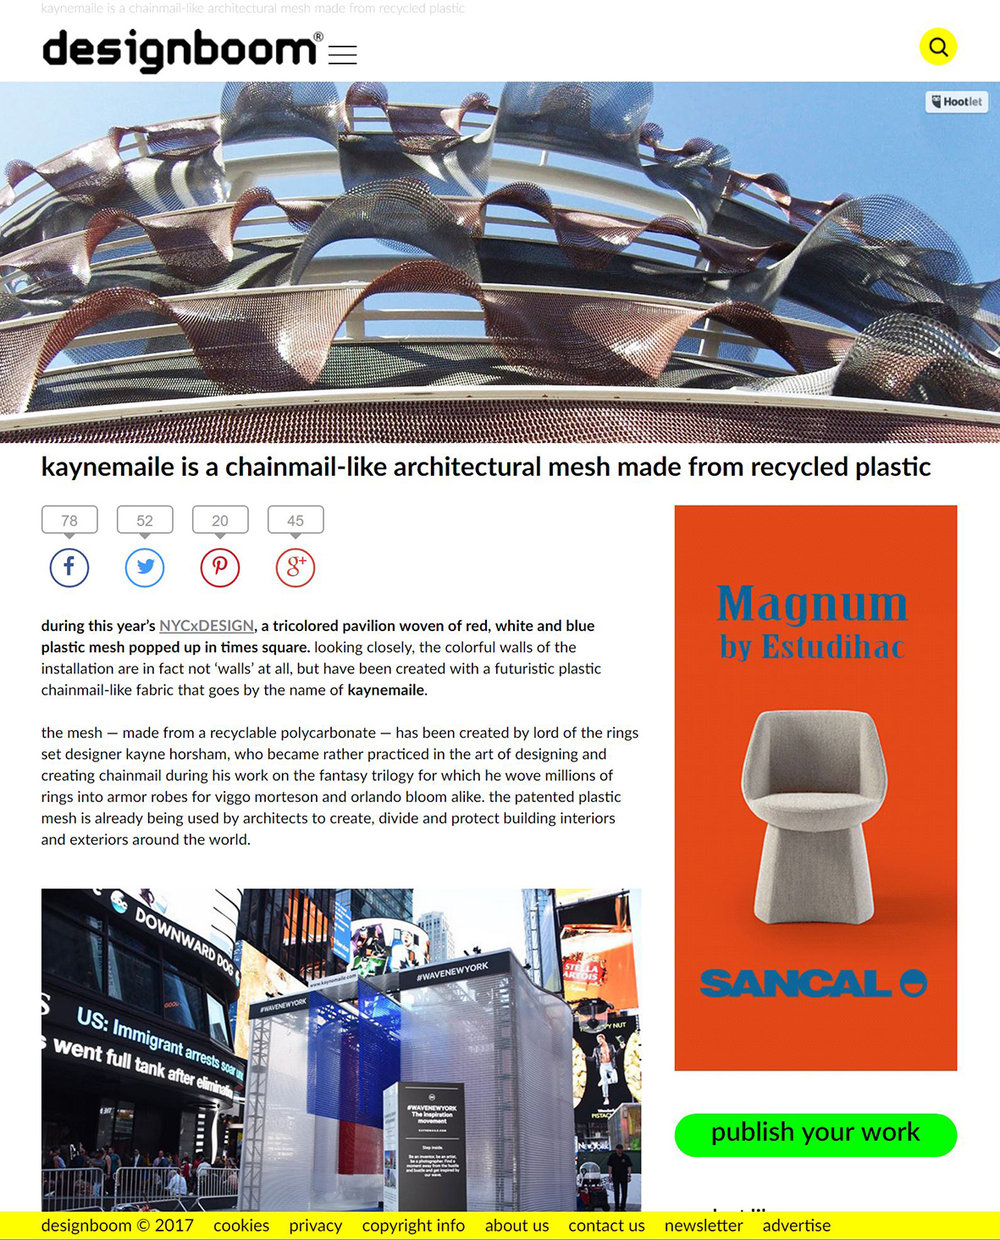 Kaynemaile is a chainmail-like architectural mesh made from recyclable plastic